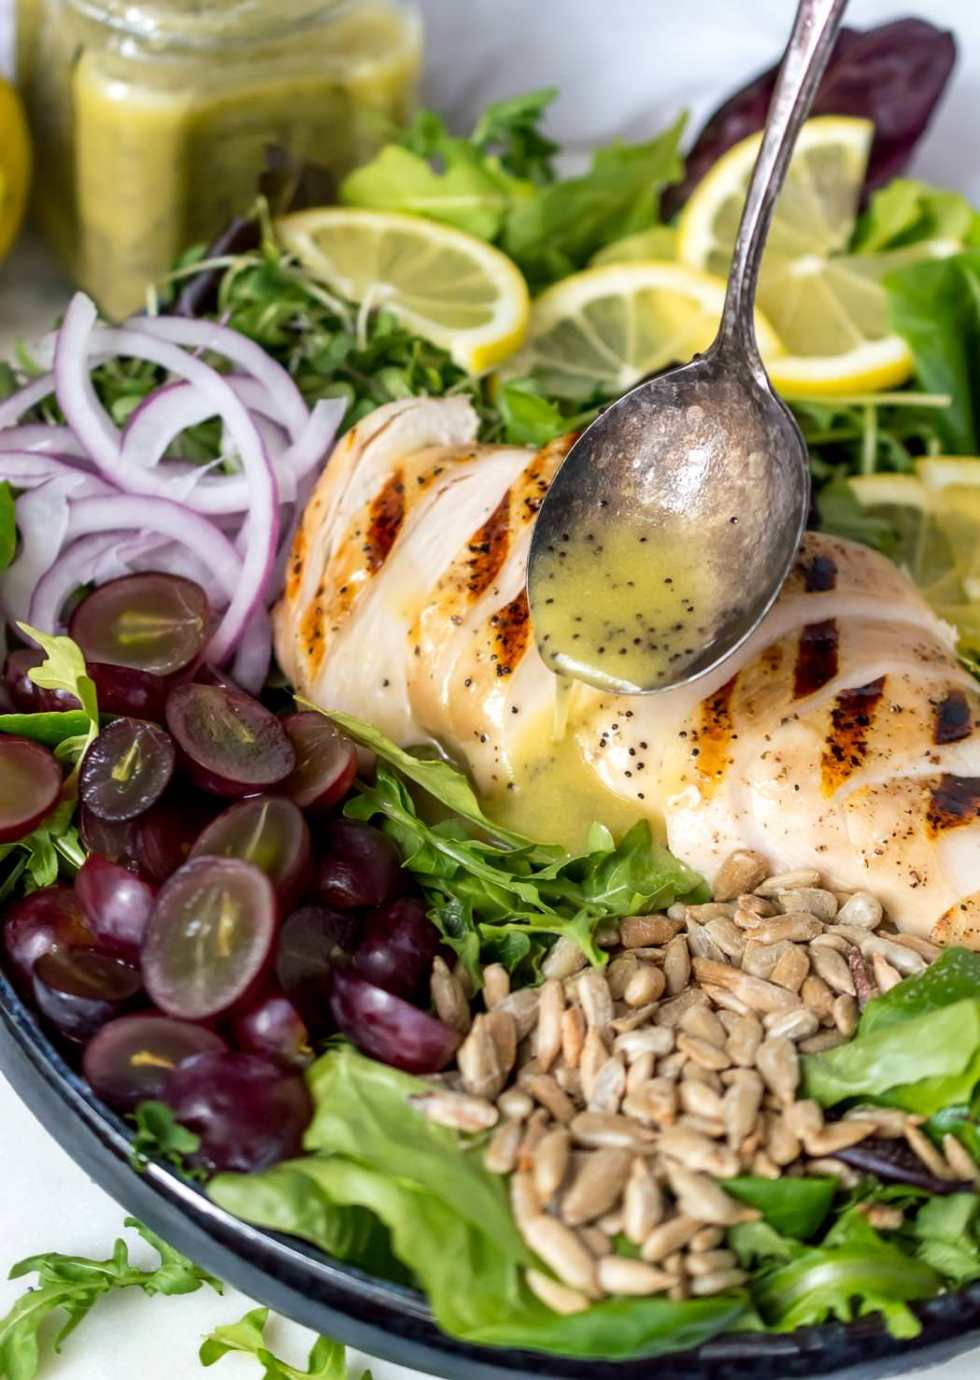 spoon drizzling lemon poppy seed dressing over grilled chicken salad